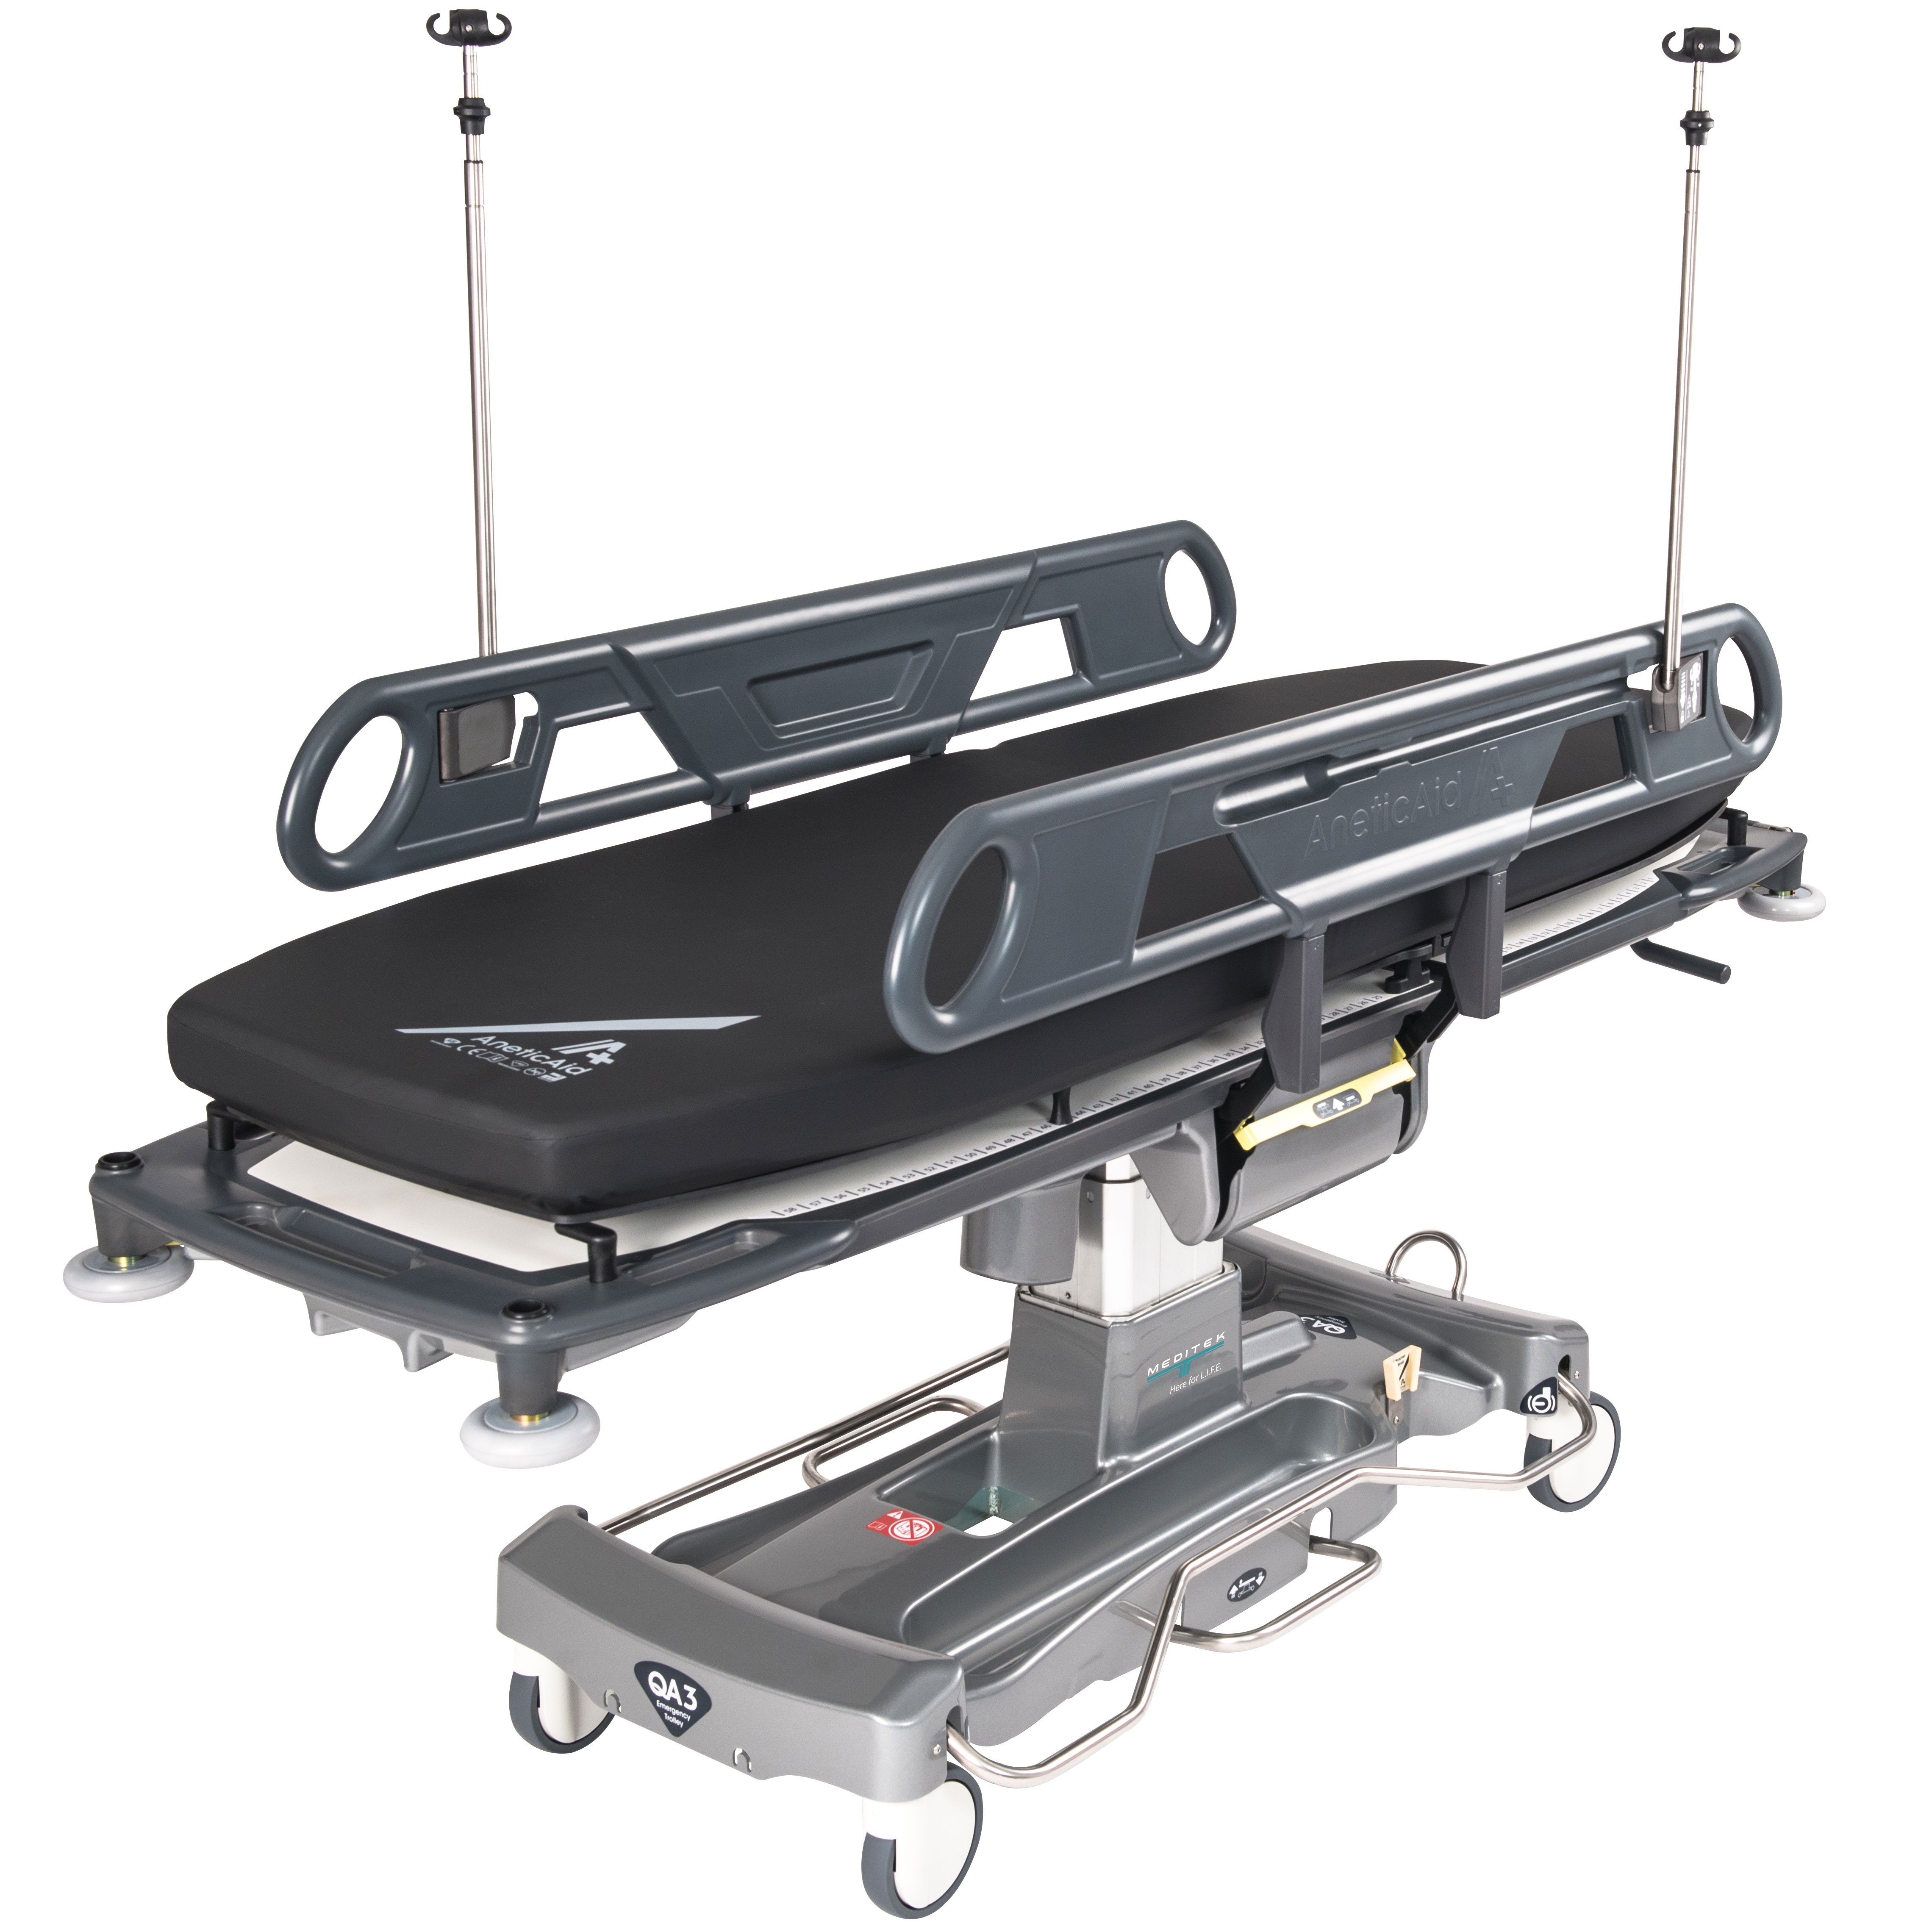 Meditek QA3 Trauma Stretcher